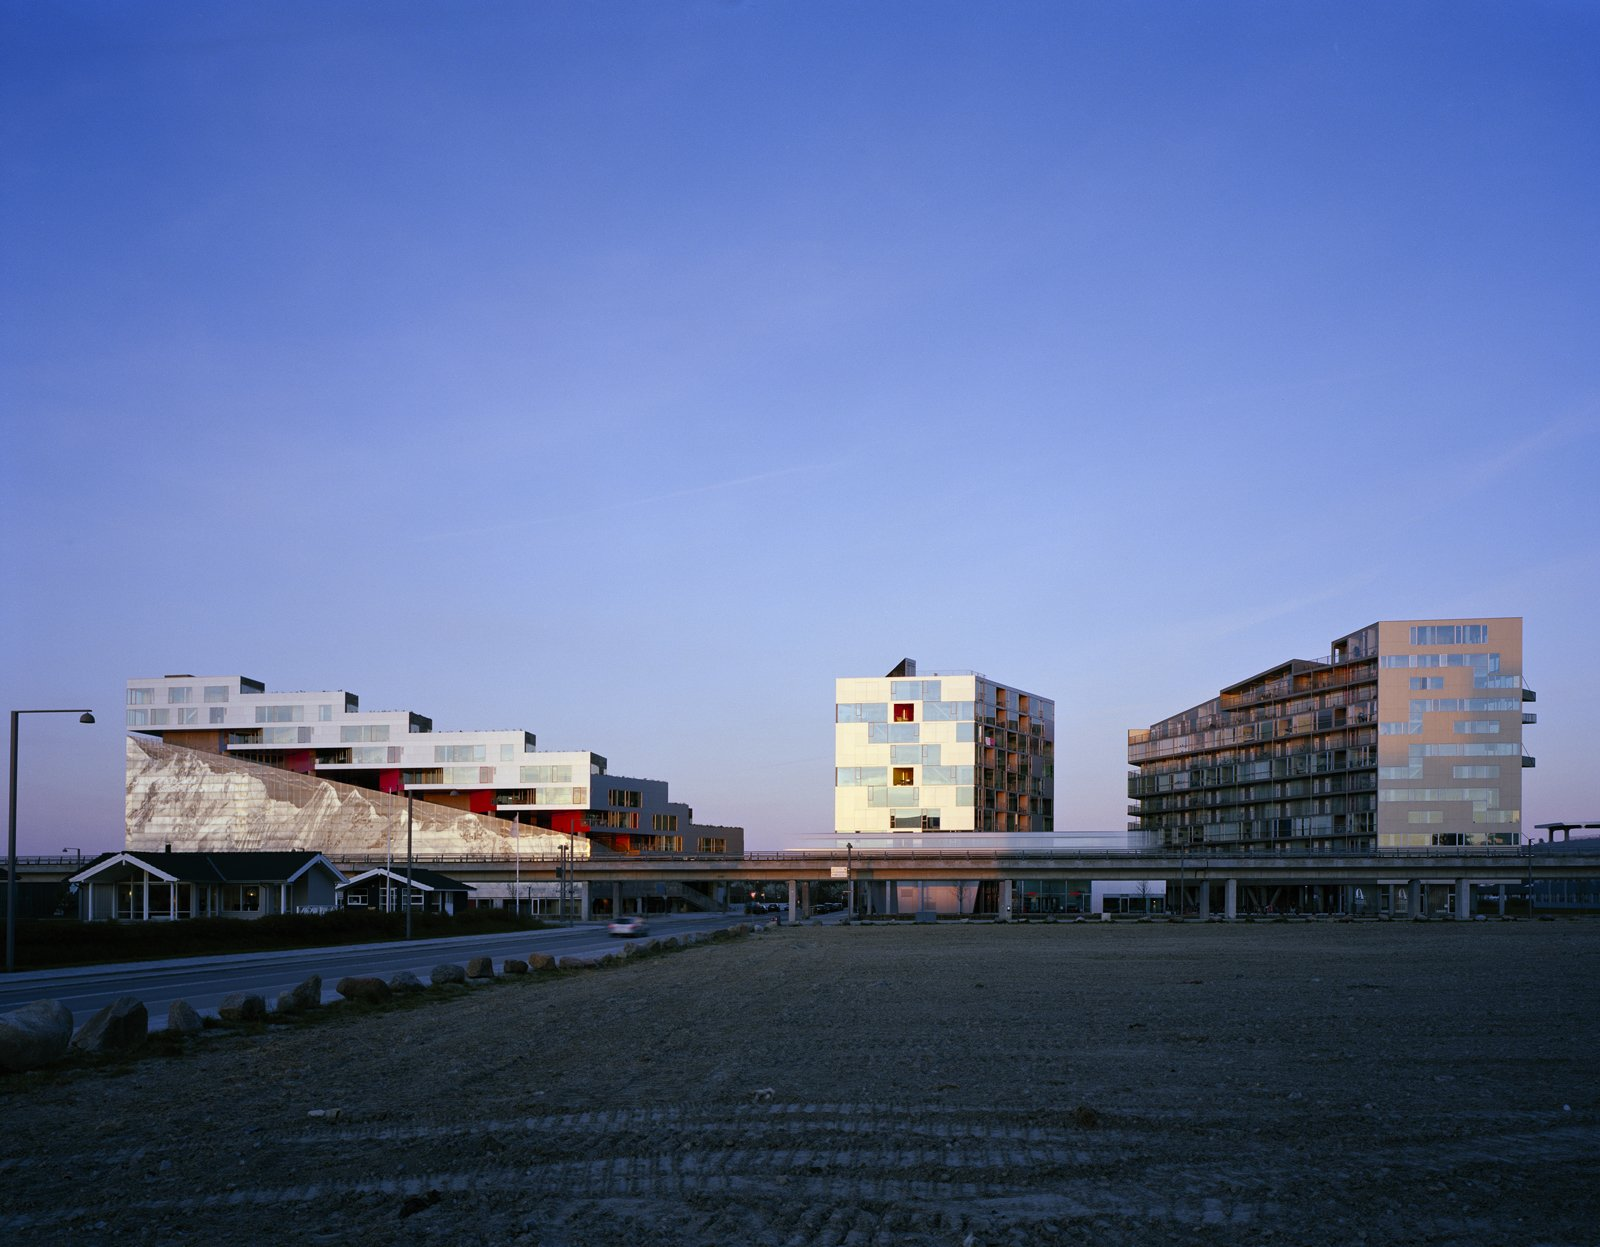 The VM Houses (the two buildings on the right) opened in Ørestad in 2005, with the Mountain Dwellings (left) following in 2008. Up next in the neighborhood: The firm's BIG House (or Figure Eight building) is scheduled to be completed in 2010.  Photo 13 of 20 in Mountain Dwellings Urban Development in Copenhagen